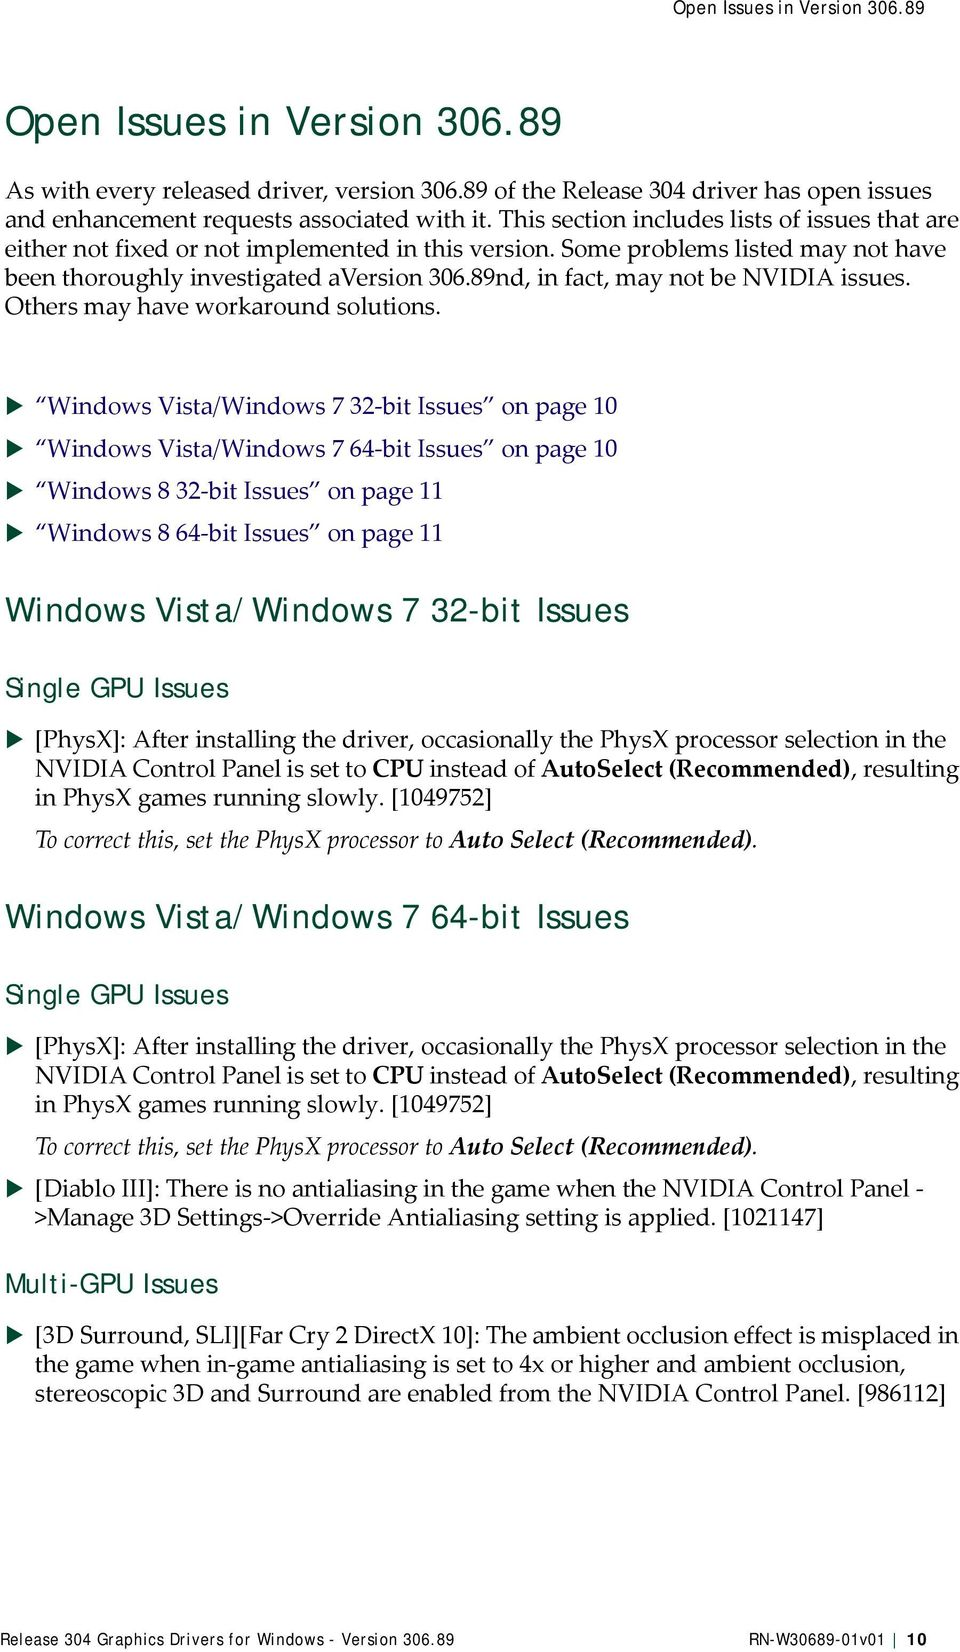 Release 304 Graphics Drivers for Windows - Version - PDF